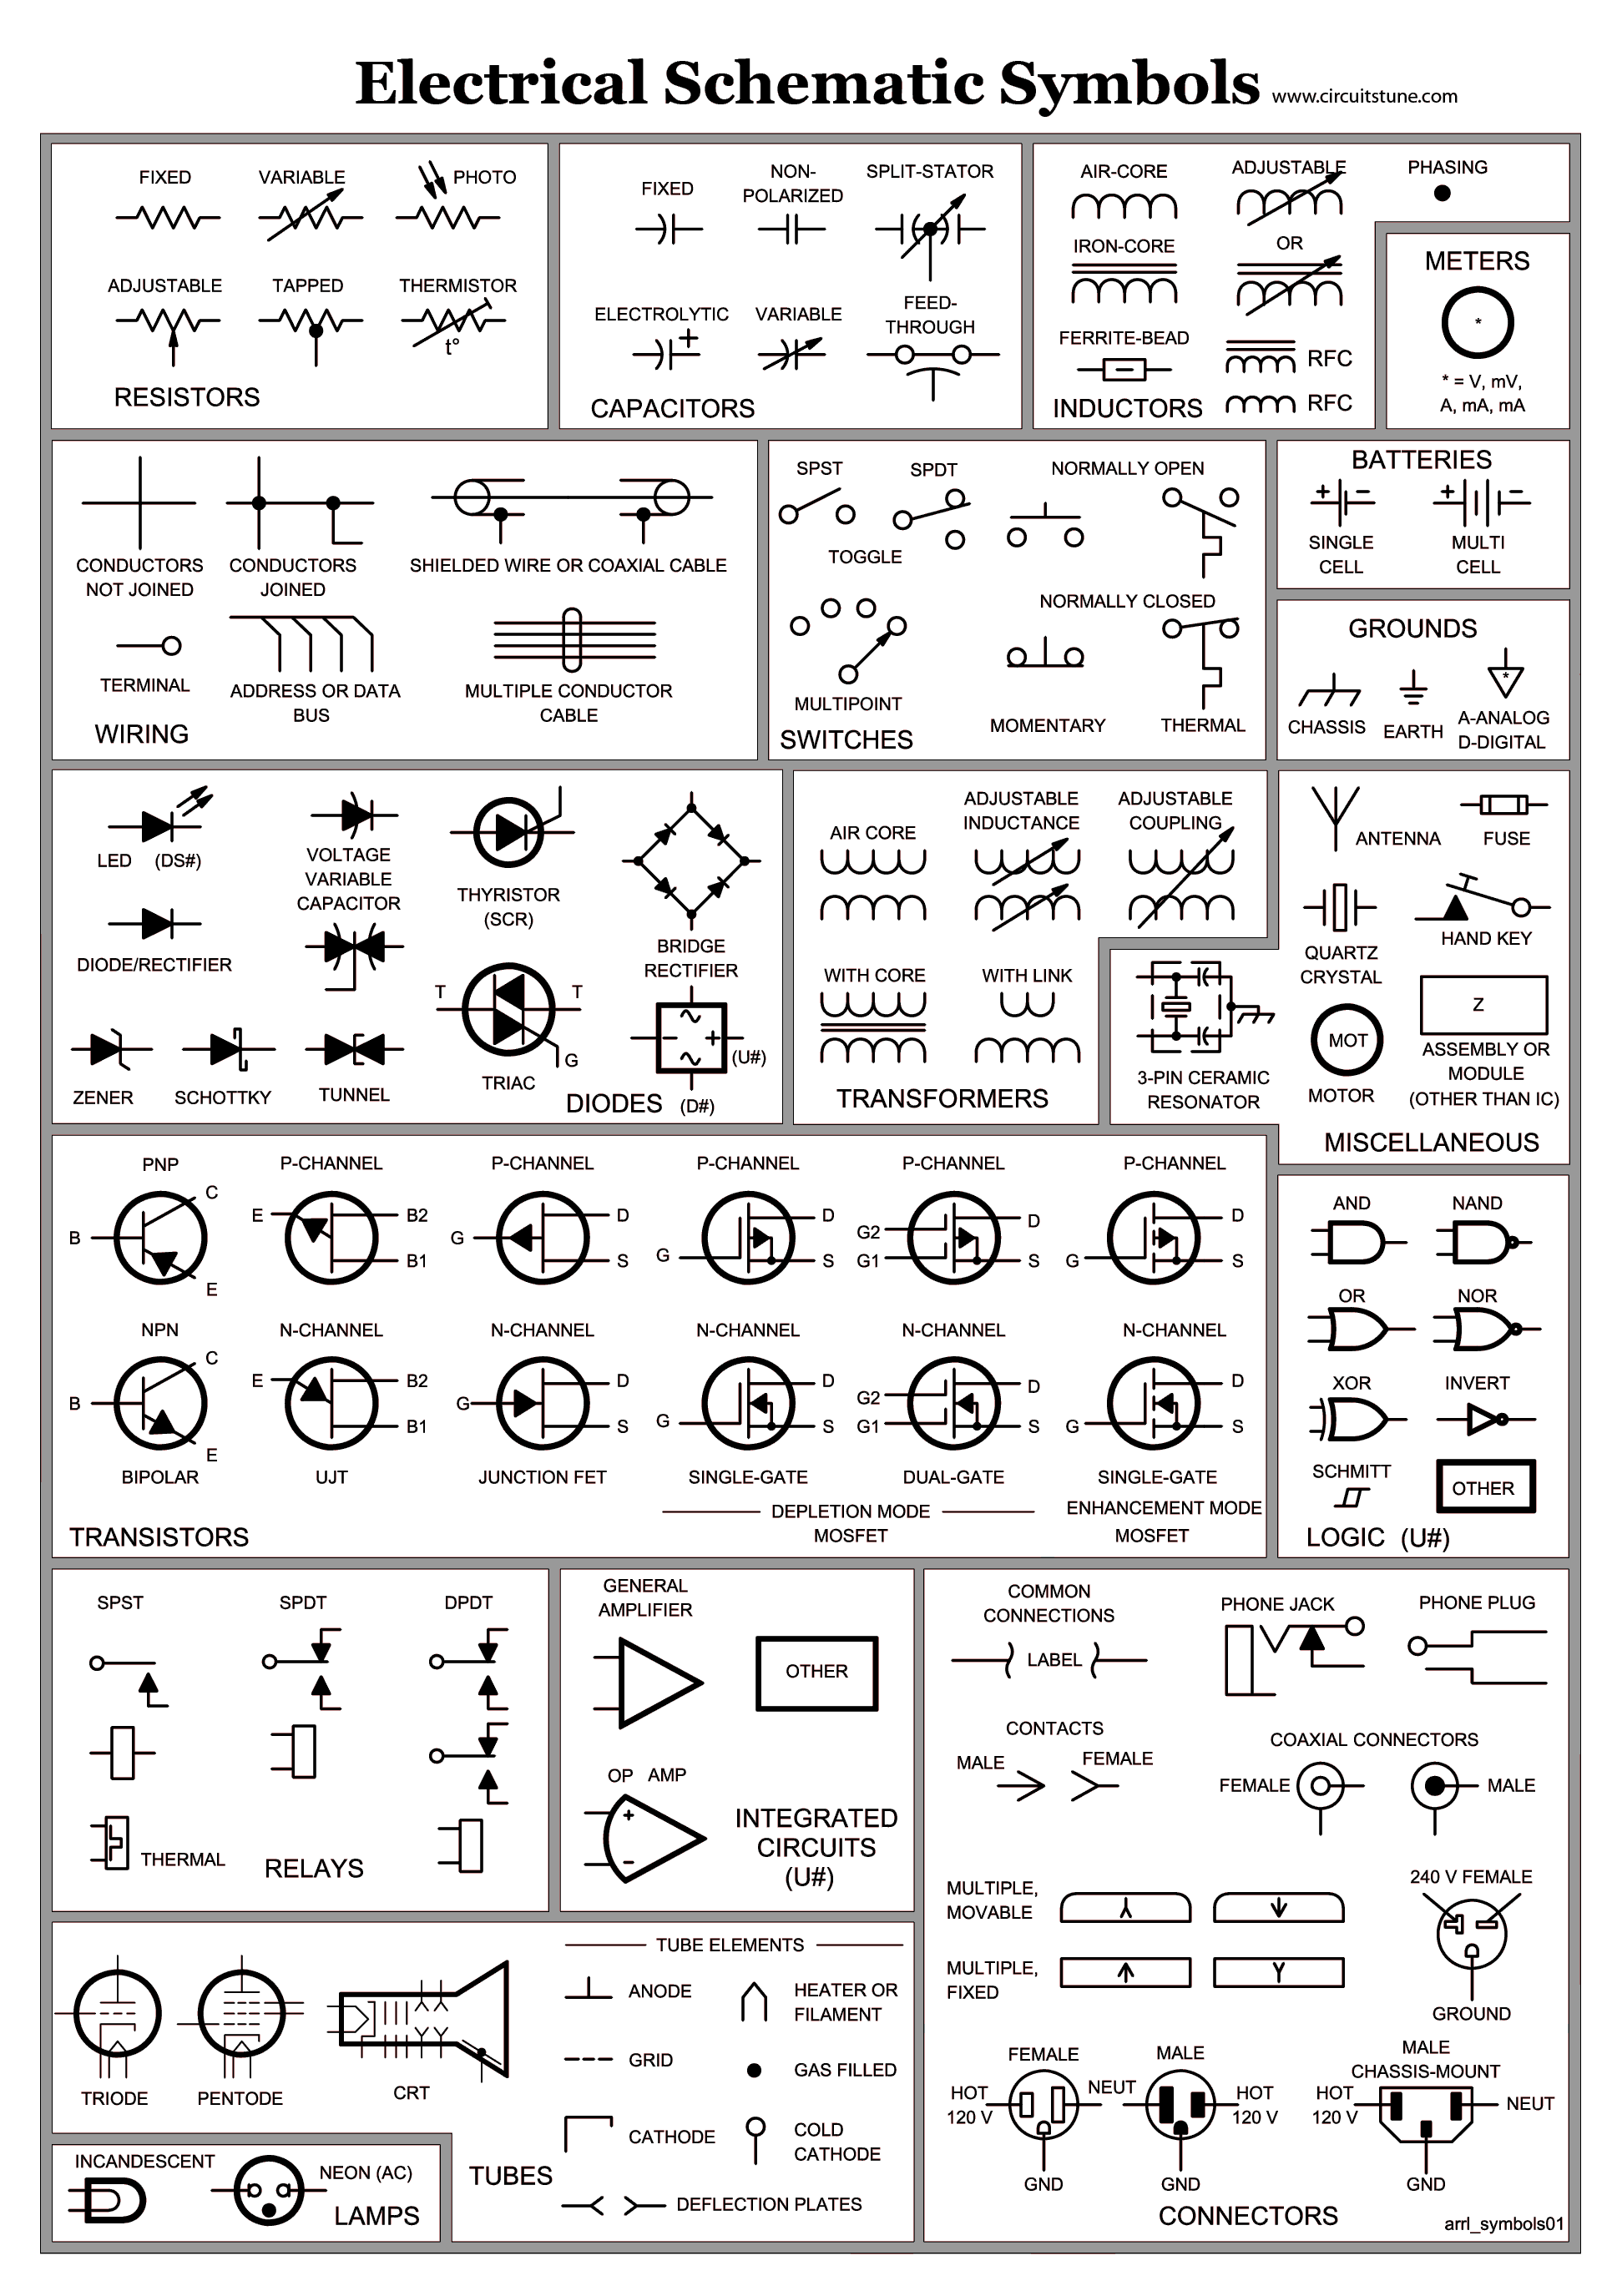 a65d176364692d2ebe913b58a654cfc3 electrical schematic symbols wire diagram symbols automotive Basic Electrical Wiring Diagrams at alyssarenee.co